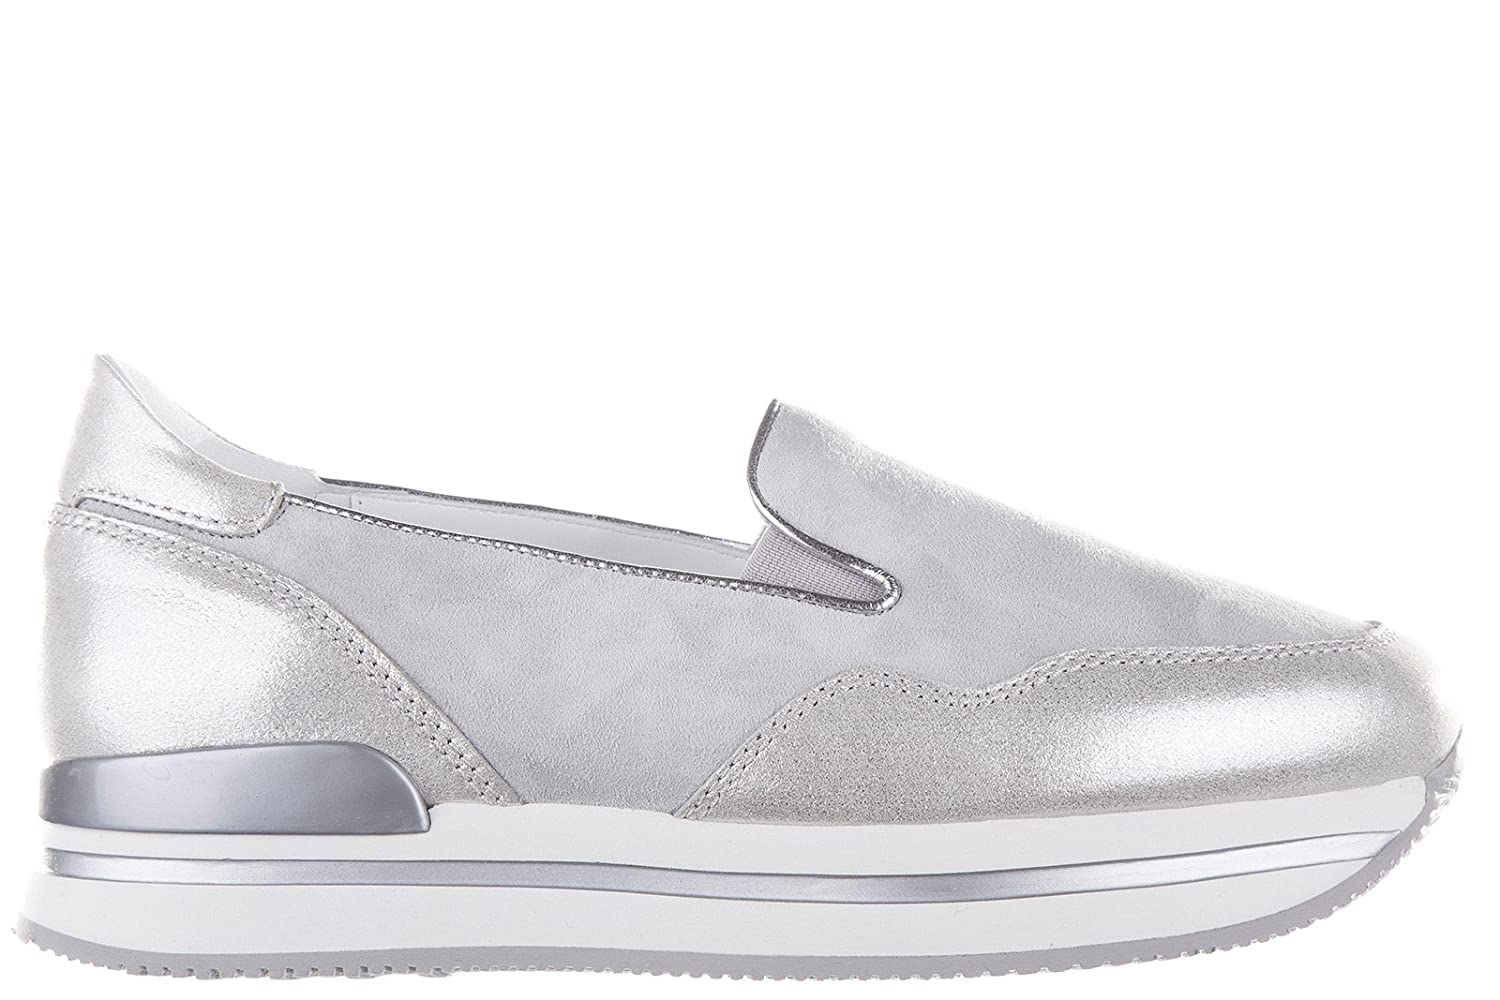 Hogan Women's Suede Slip on Sneakers h222 Grey